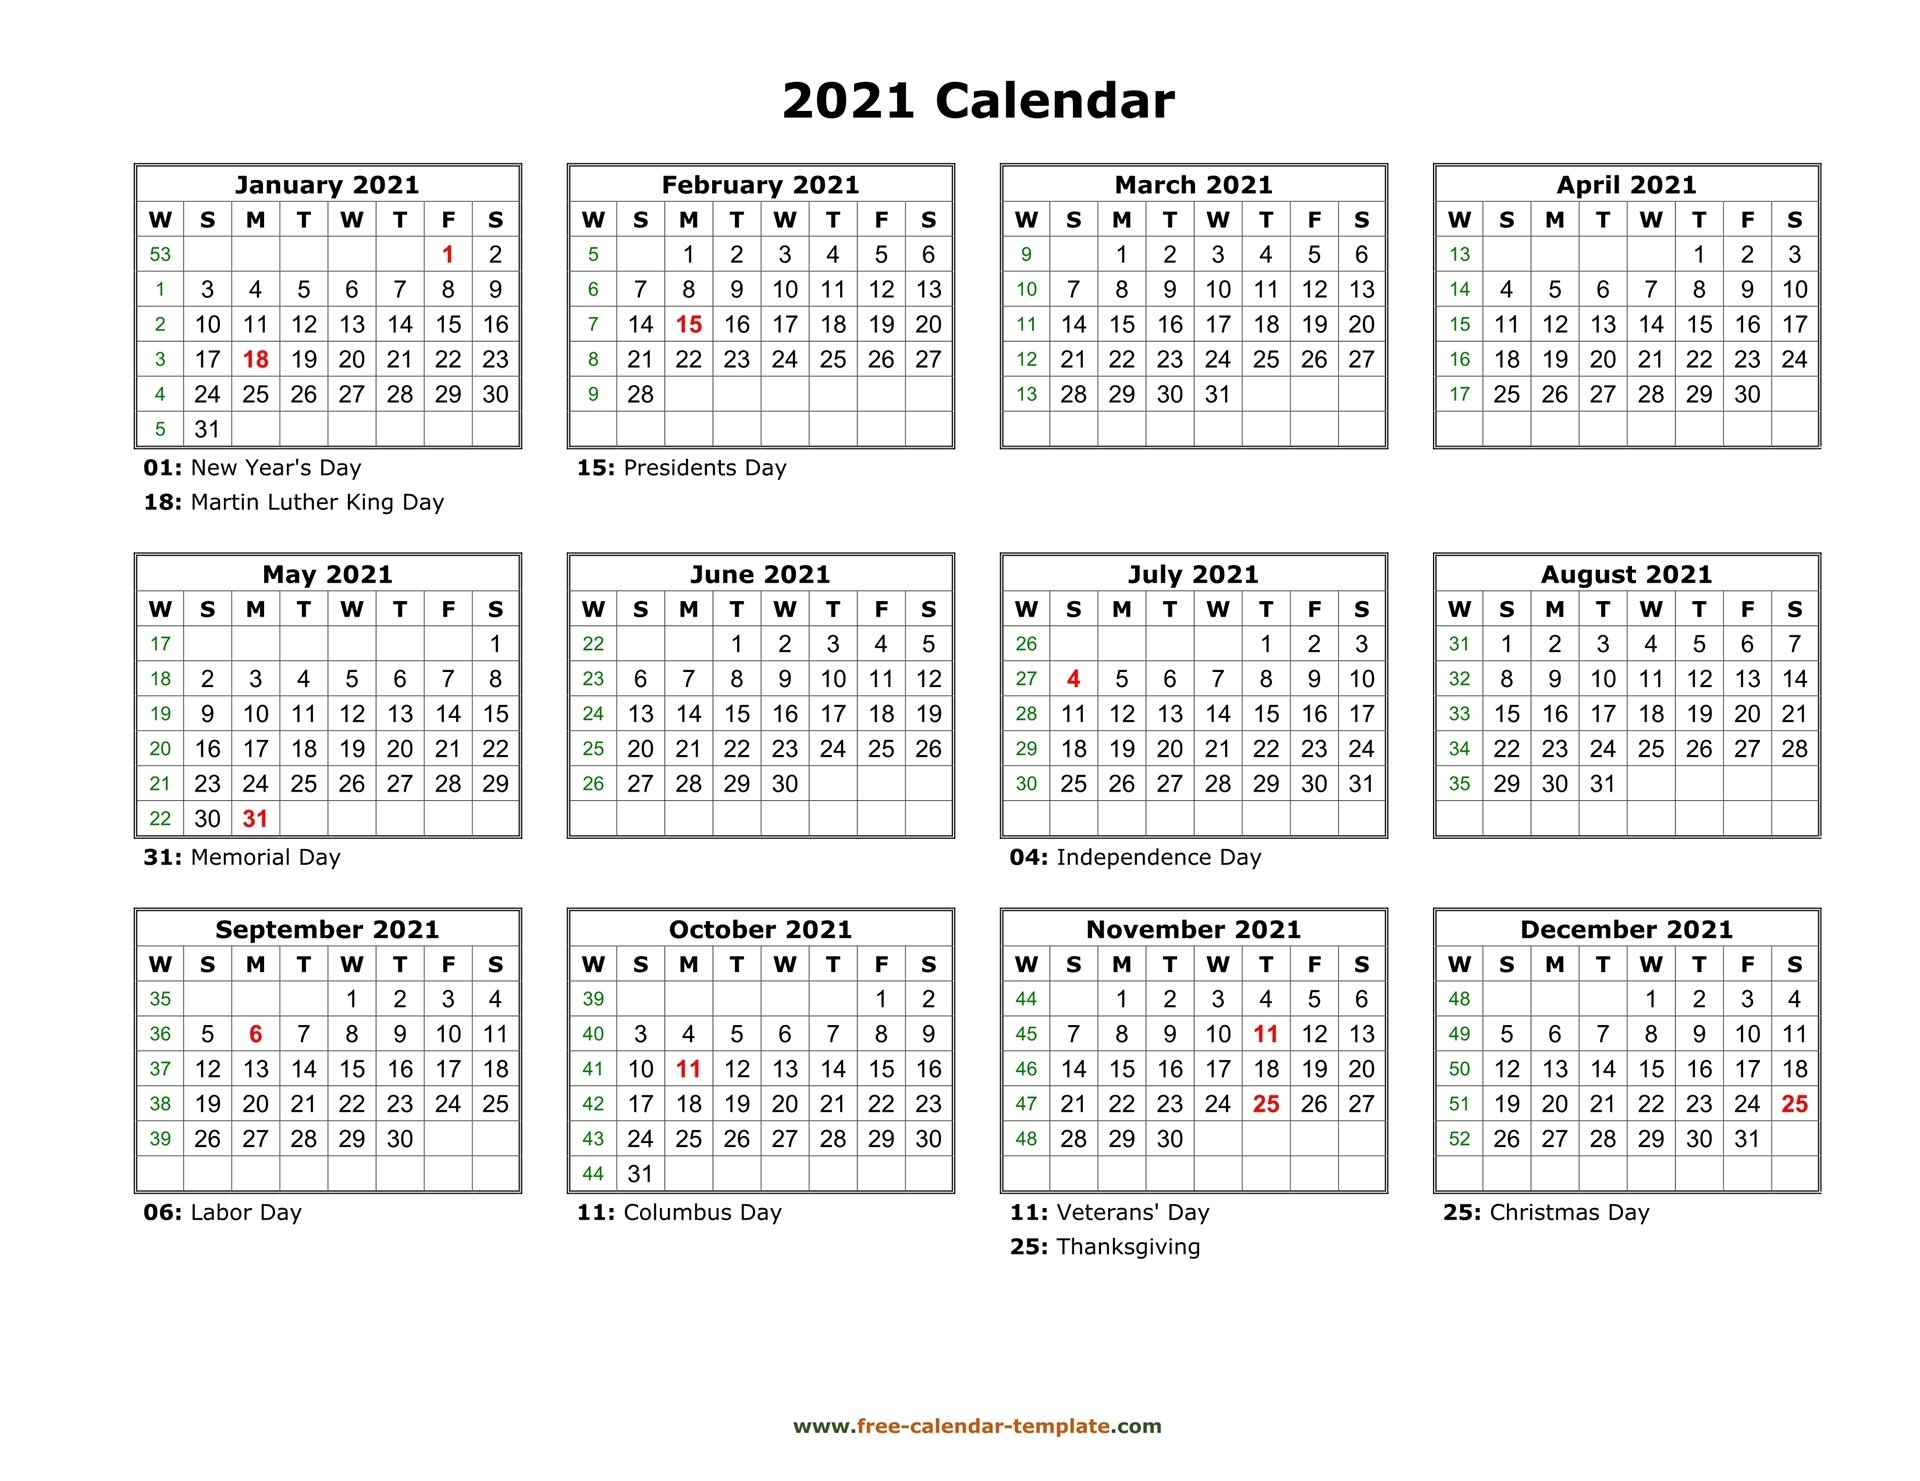 Printable Yearly Calendar 2021   Free-Calendar-Template within Two Year Calendar Template 2021 2021 Image